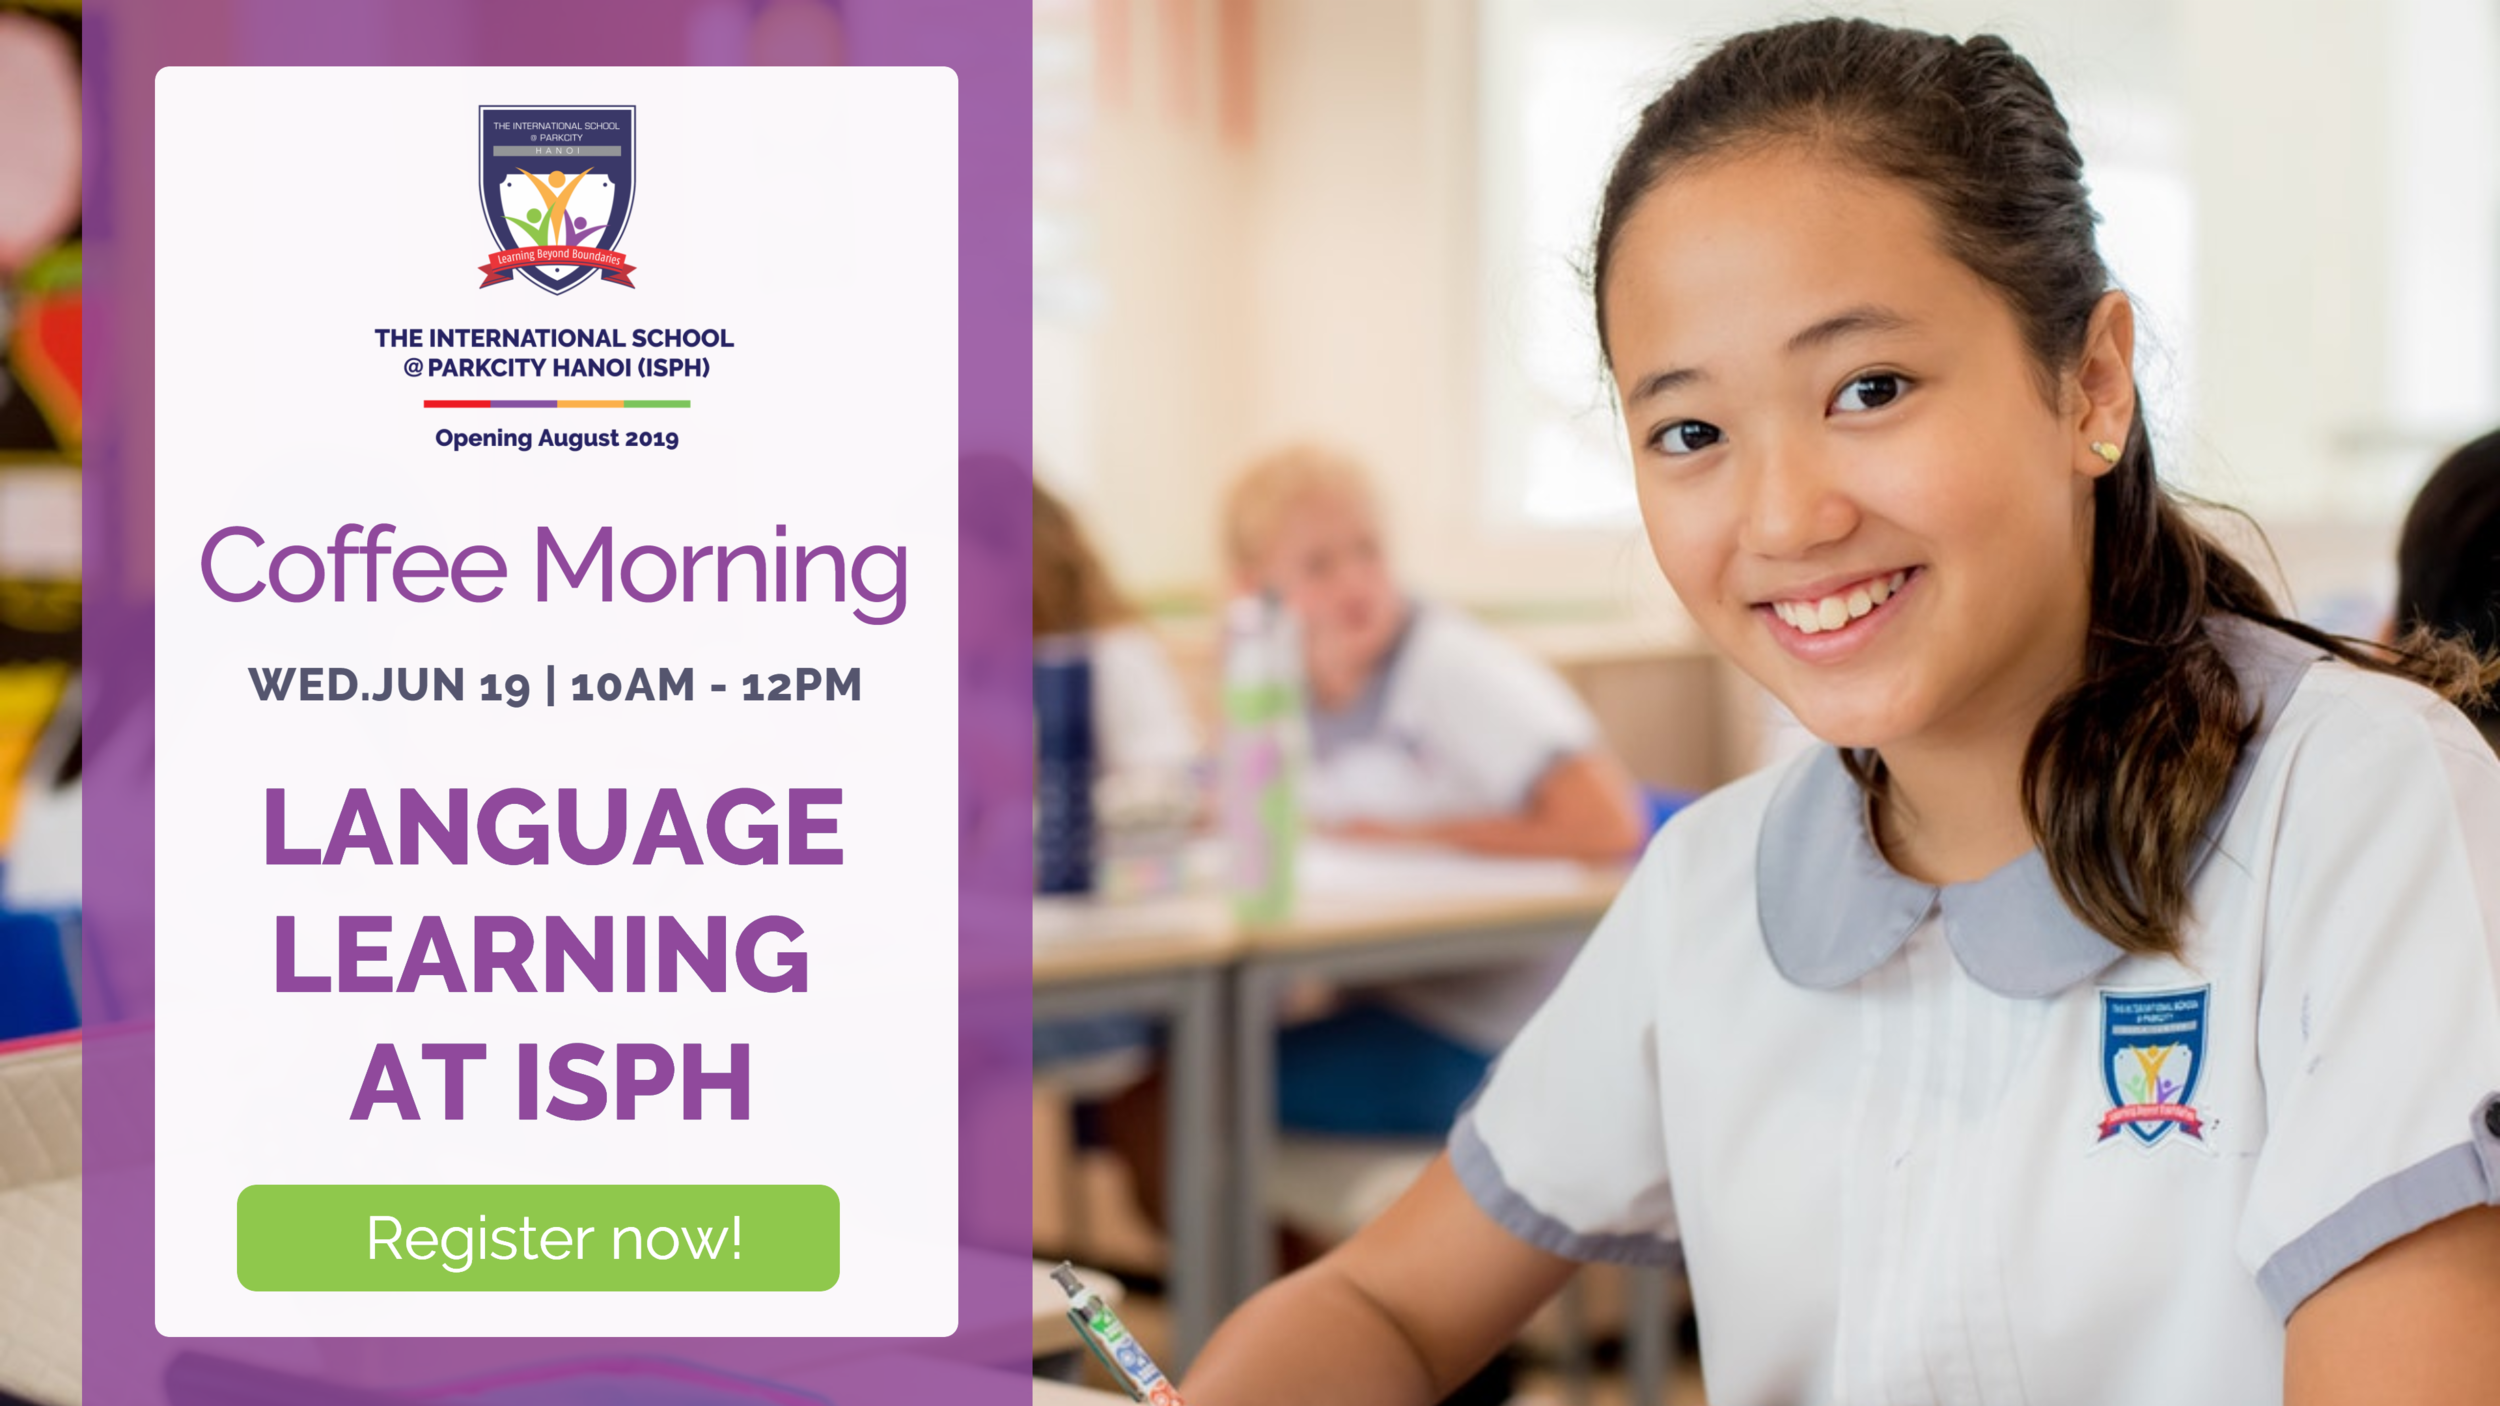 Coffee Morning 29.6.19.png